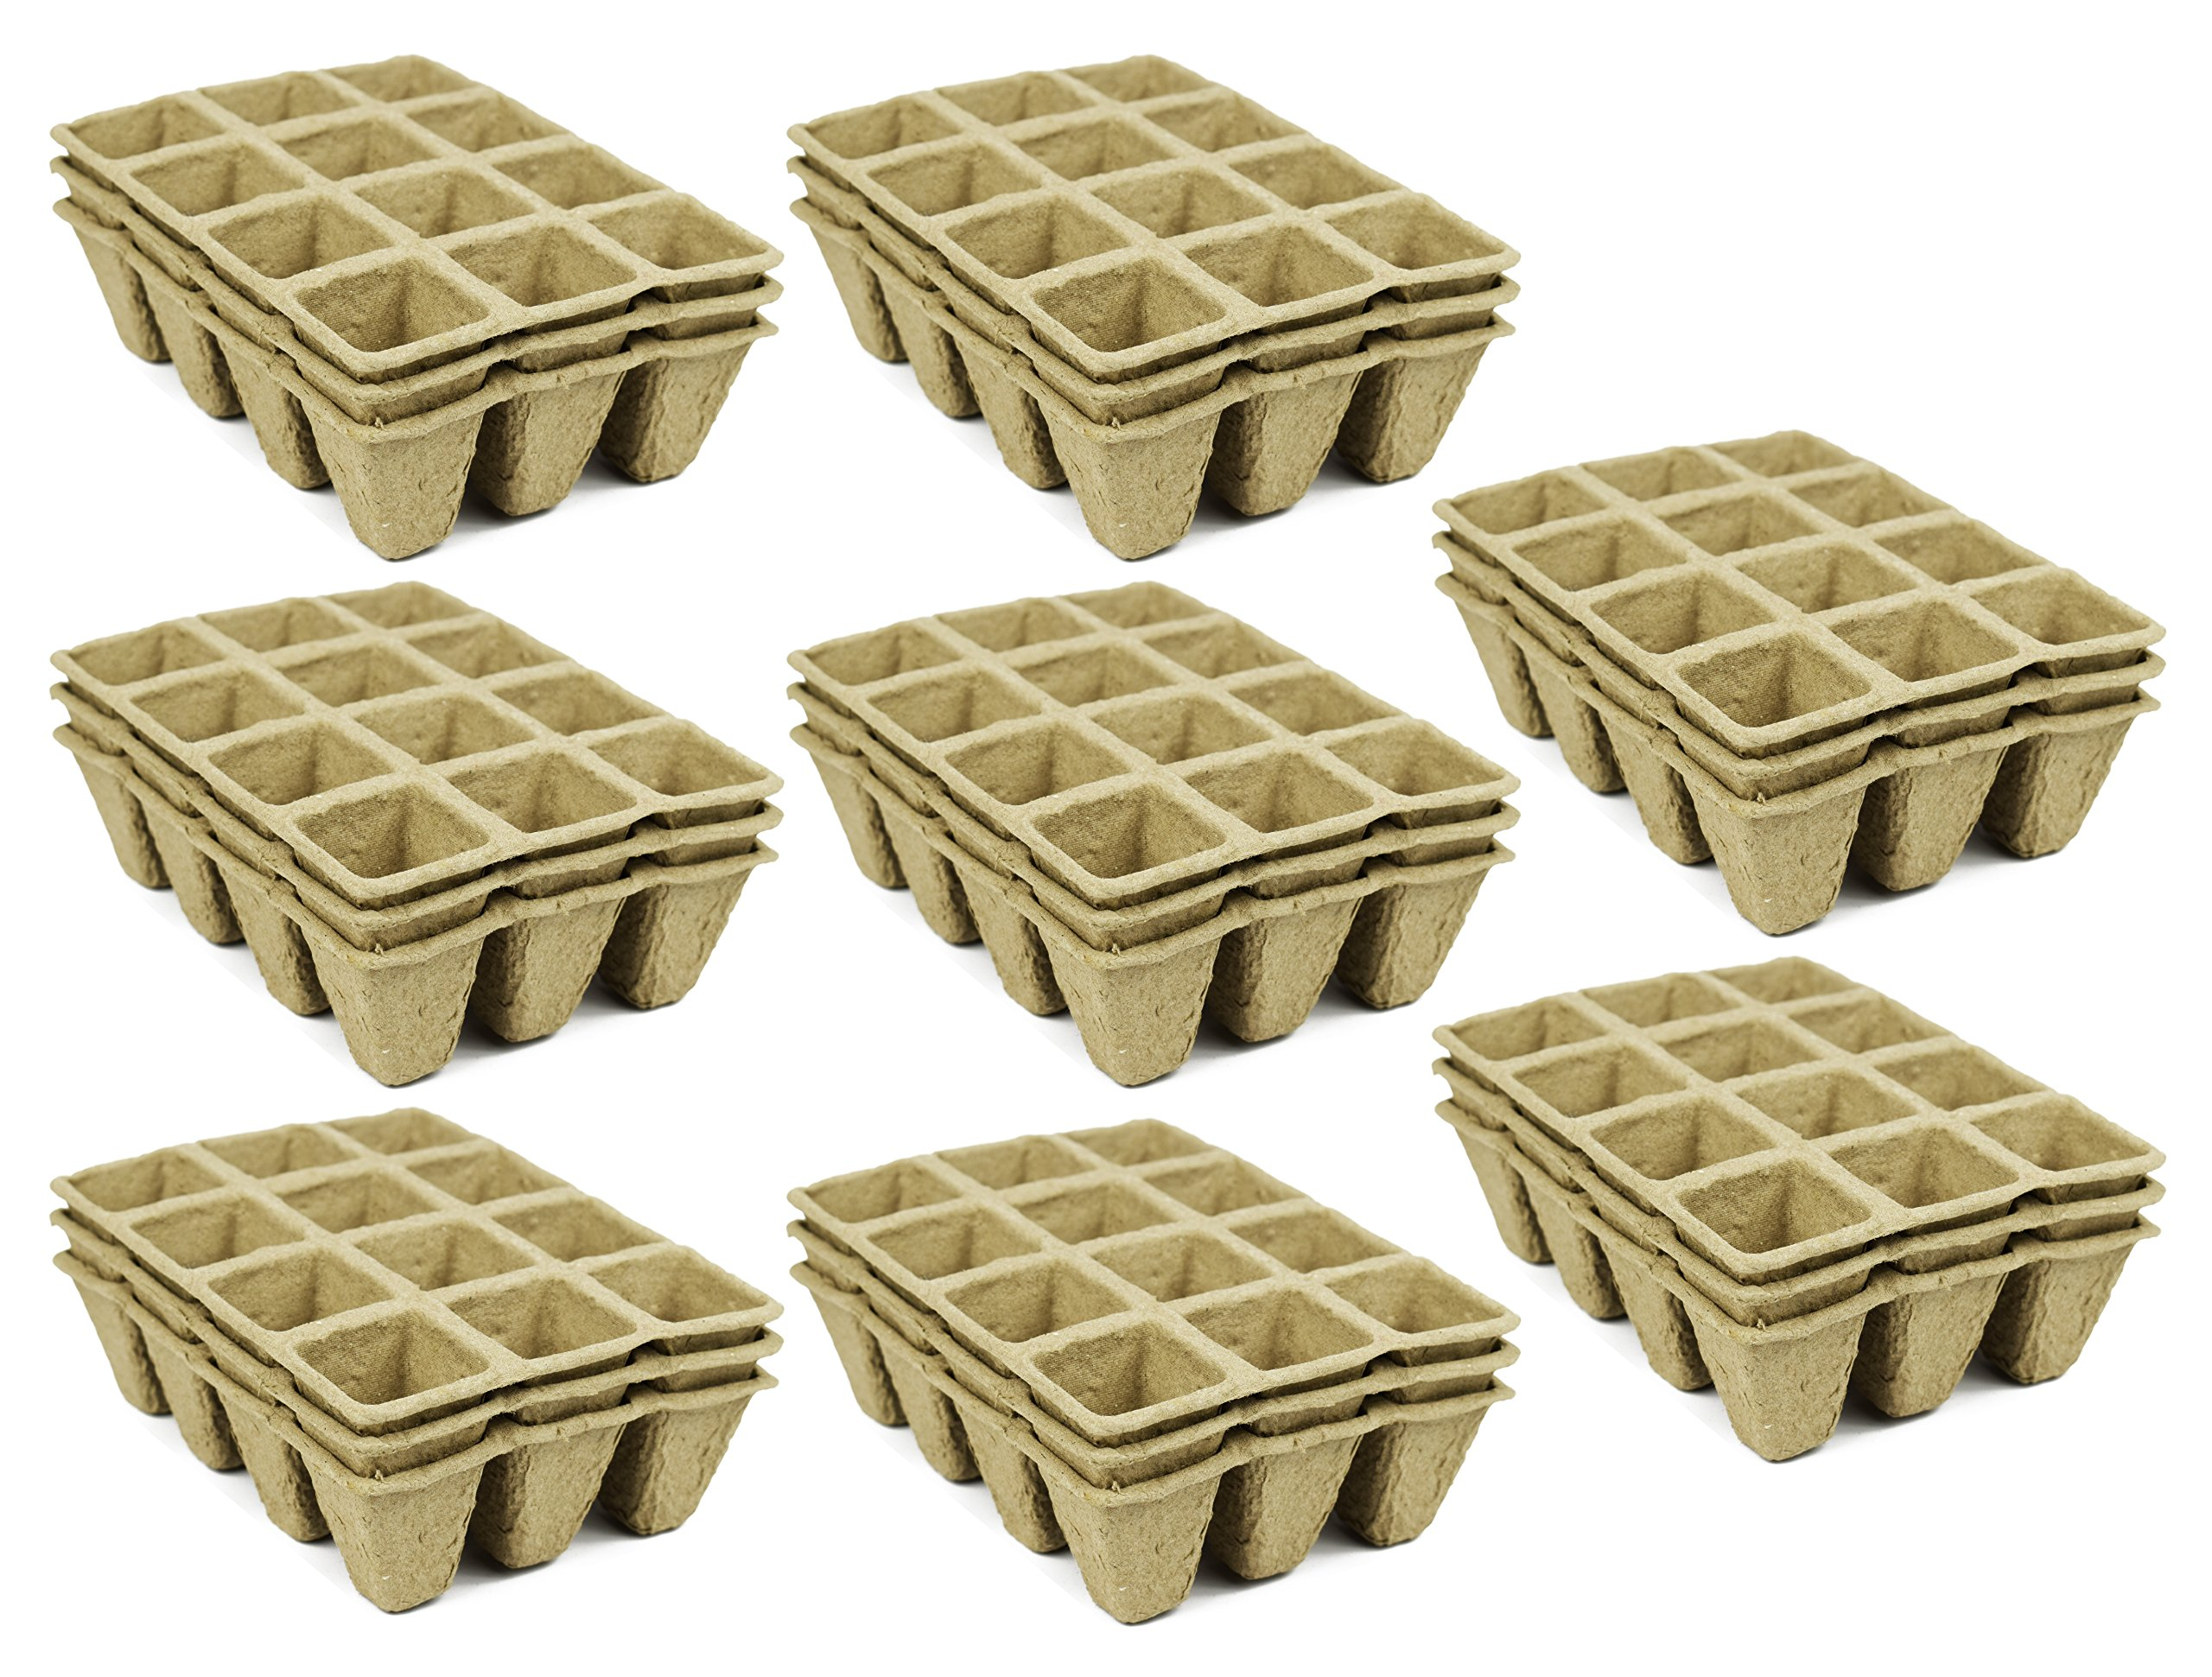 Set of 24 Biodegradable Eco Friendly Peat Tray! 3'', 2'', 12 Pot Tray - Recycled Non Bleached Peat Pots Perfect for Seed Germination! No Transplanting Required - No More Damaged Roots!